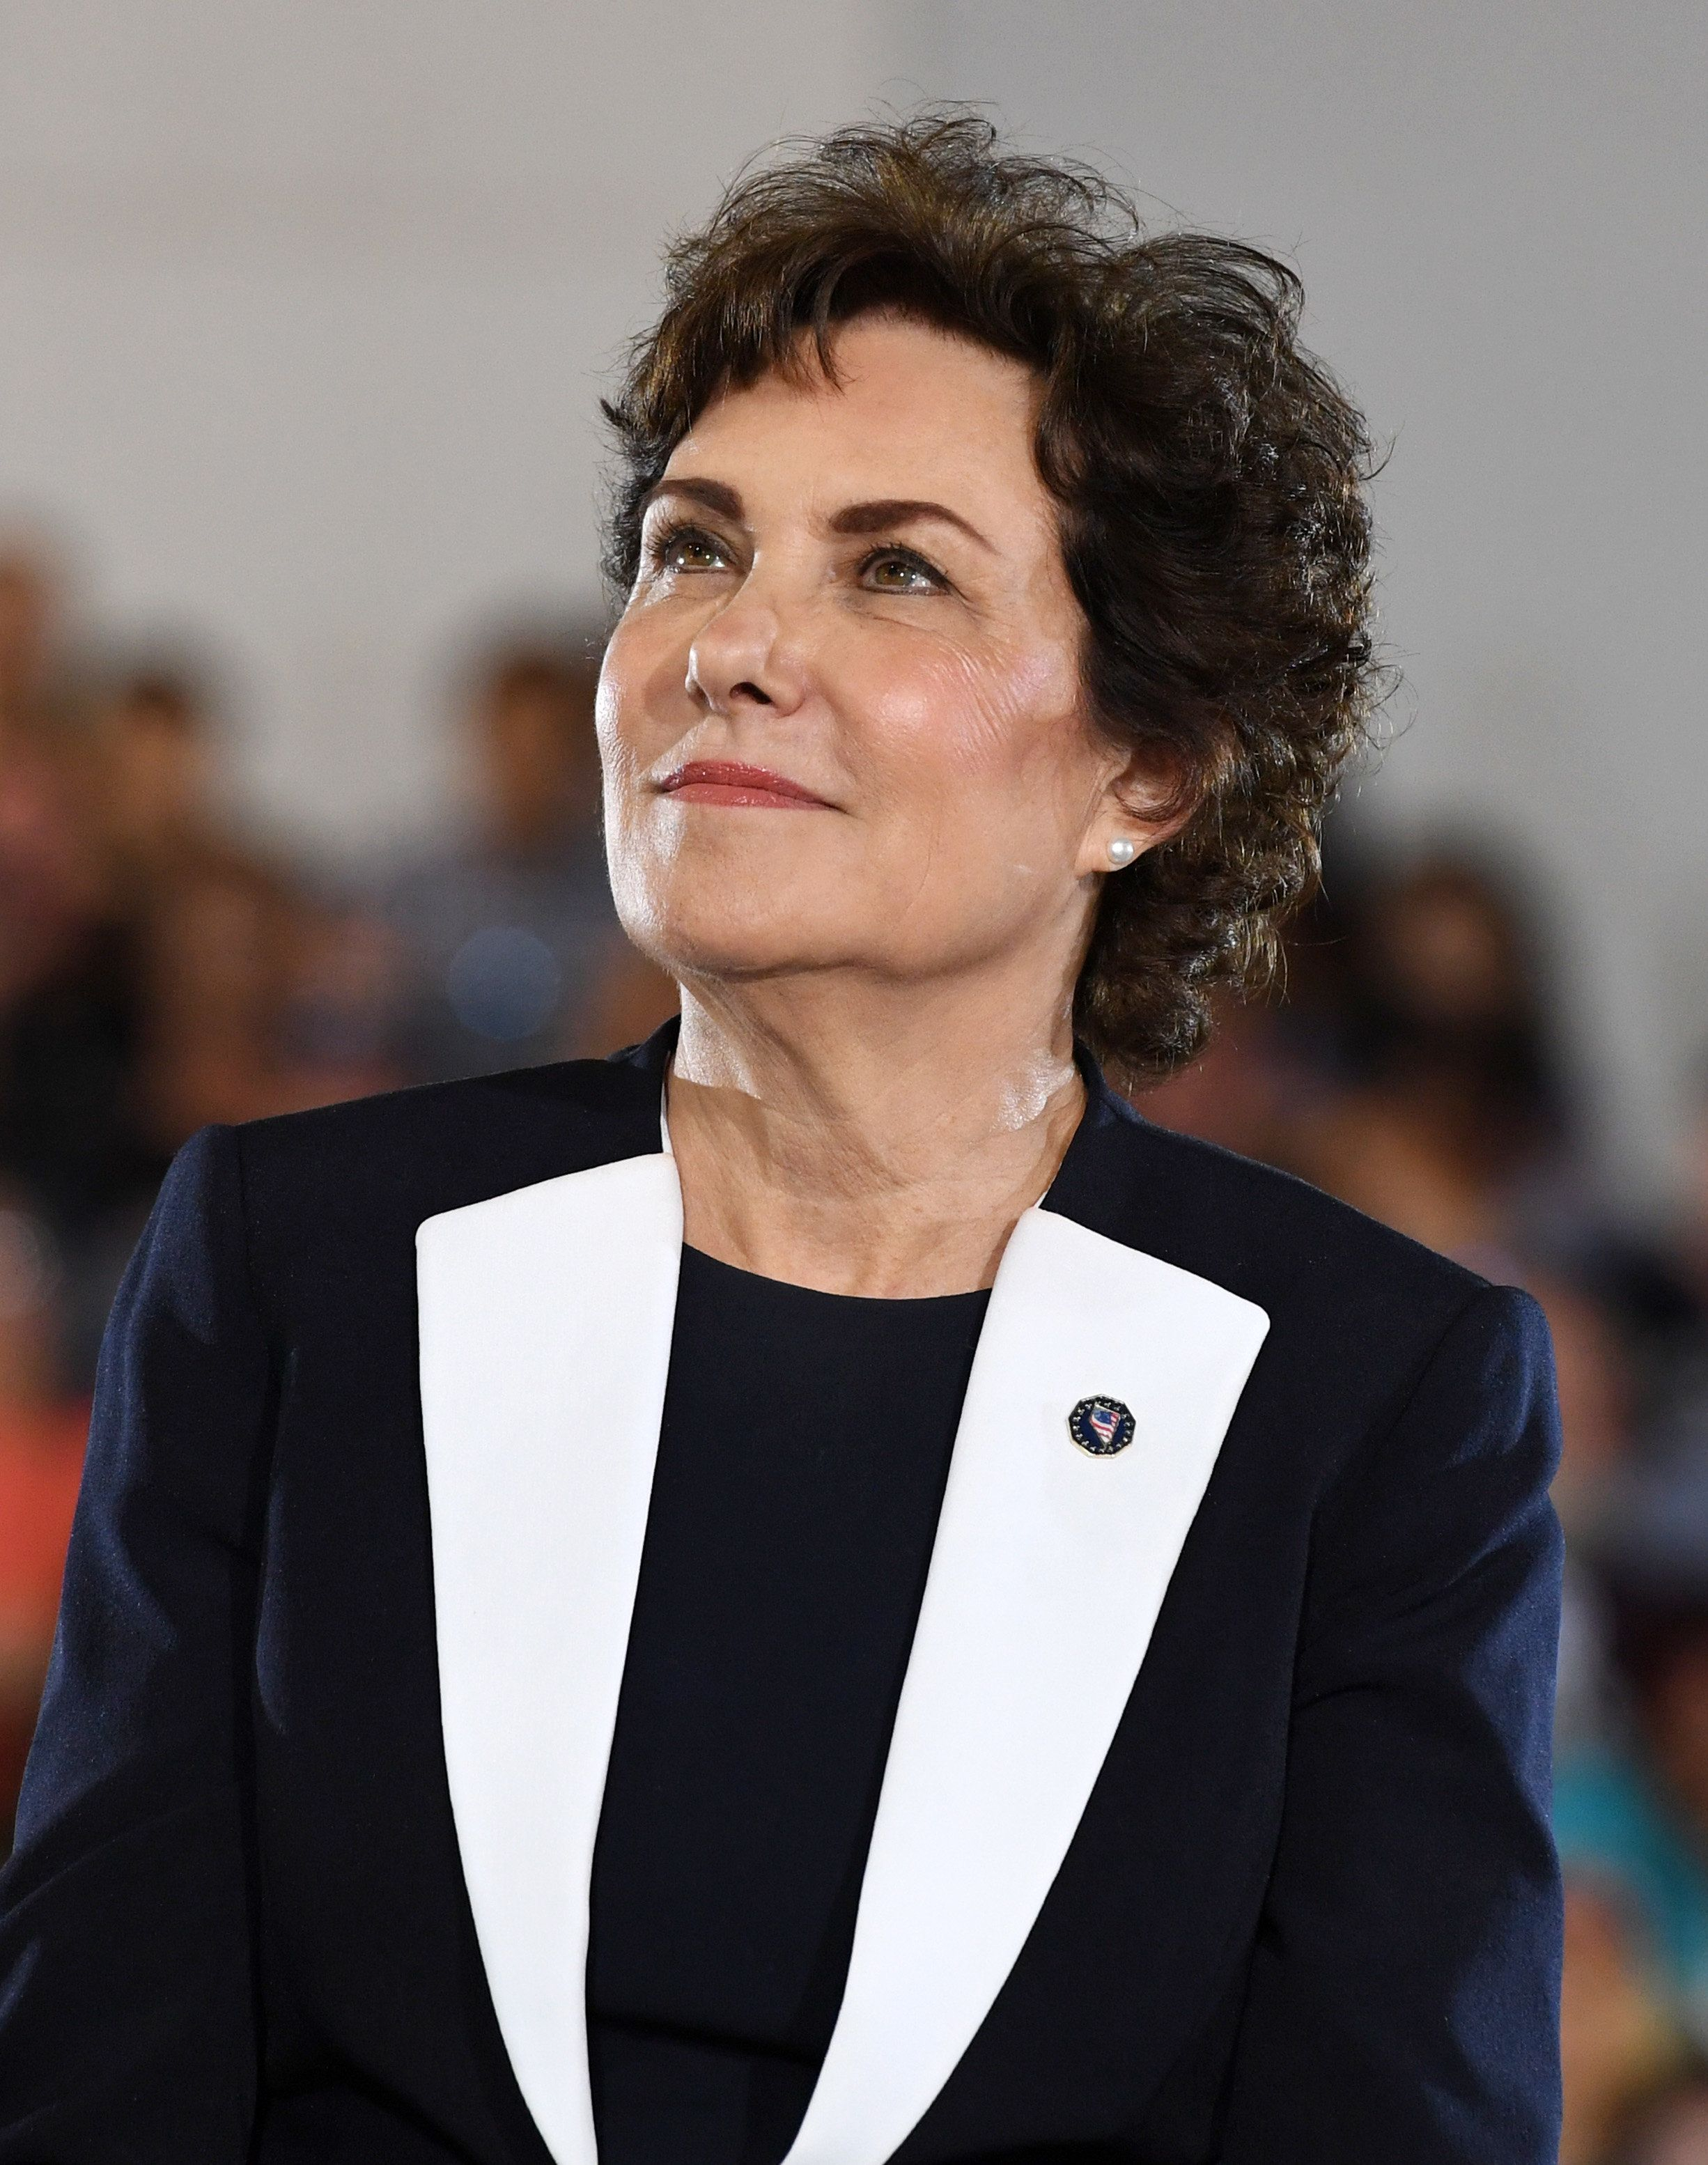 LAS VEGAS, NEVADA - OCTOBER 22:    U.S. Rep. and U.S. Senate candidate Jacky Rosen (D-NV) listens during a get-out-the-vote rally featuring former U.S. President Barack Obama at the Cox Pavilion as he campaigns for Nevada Democratic candidates on October 22, 2018 in Las Vegas, Nevada. Early voting in Clark County, Nevada began on October 20 and has recorded the highest turnout during the first two days of early voting in a midterm election.  (Photo by Ethan Miller/Getty Images)